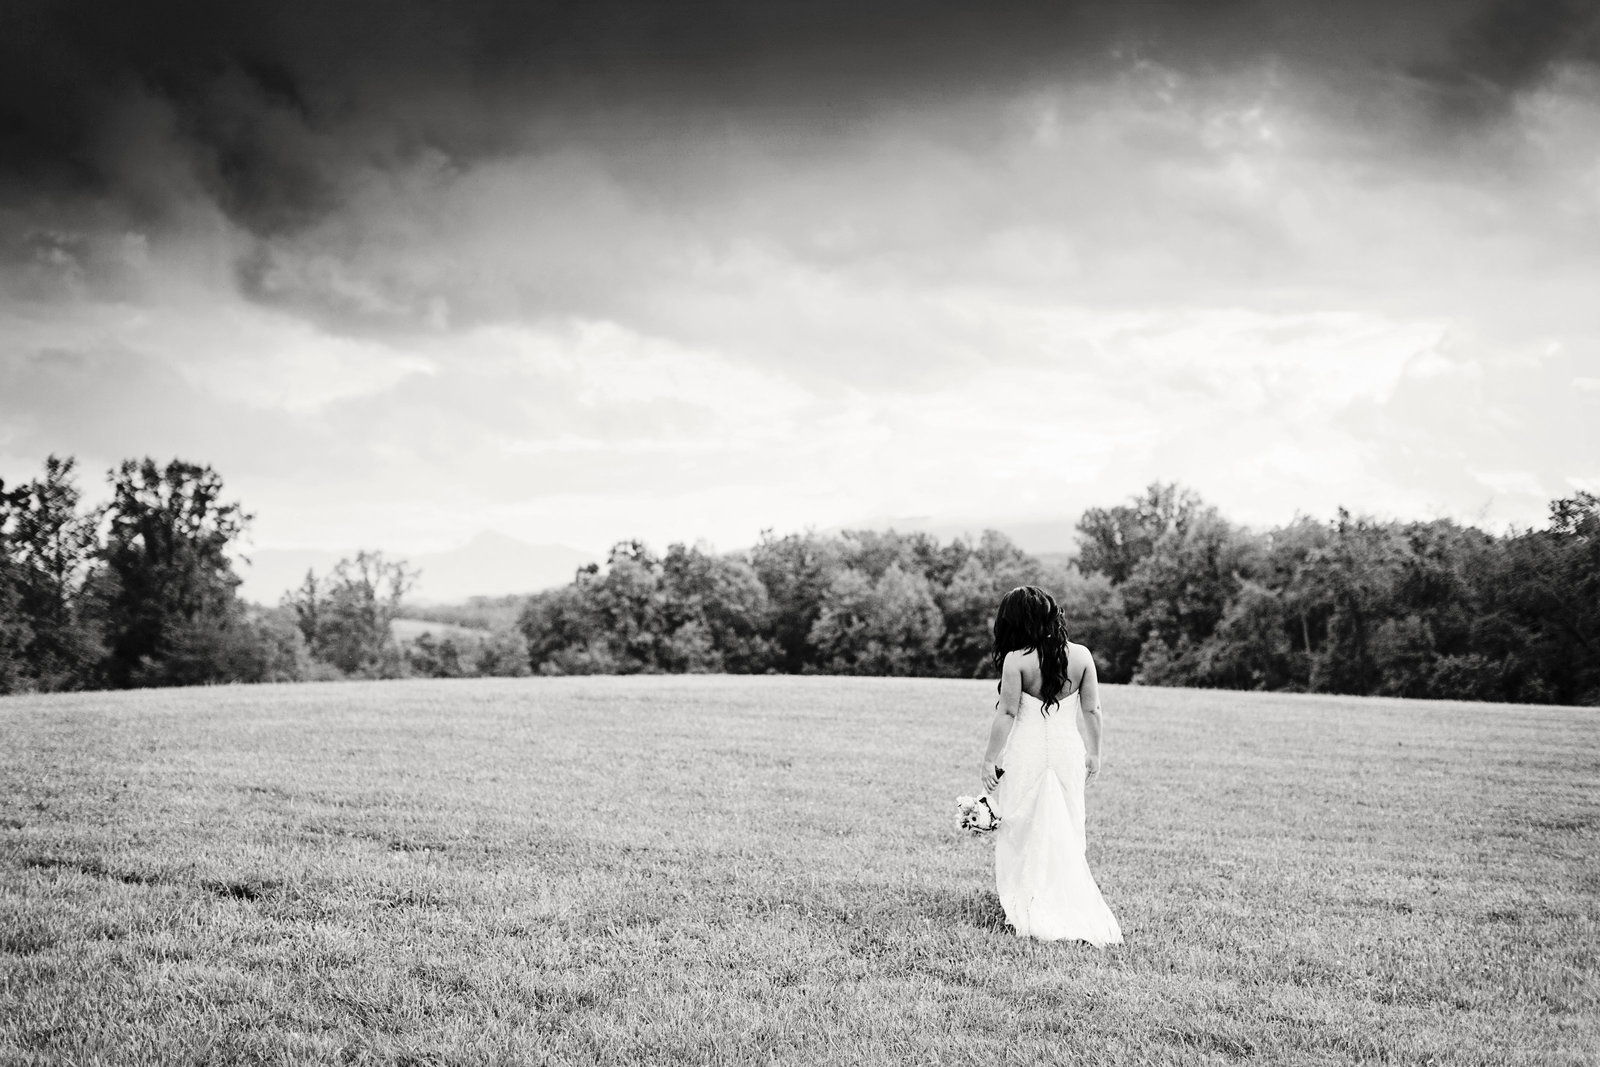 bridal portrait skyryder engagement wedding photography blacksburg roanoke charlottesville lexington radford-011